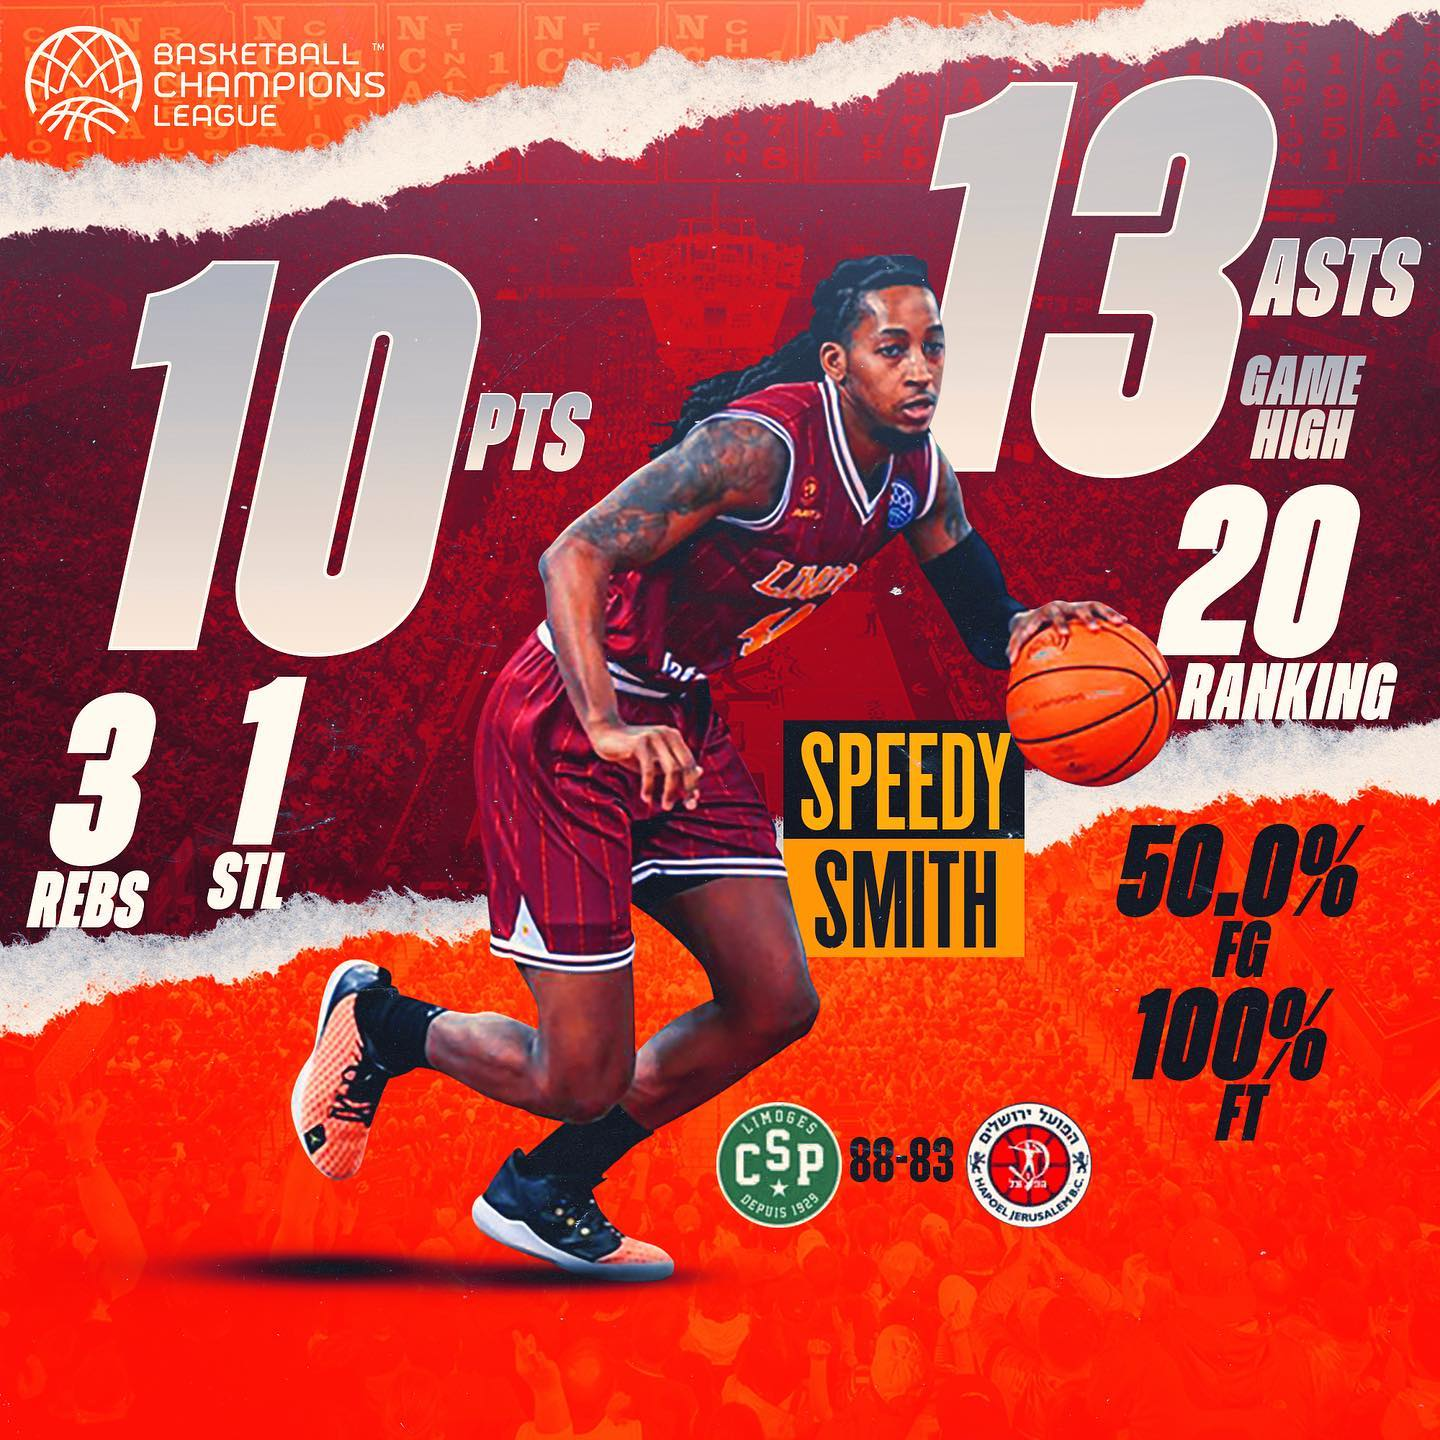 Huge double double for Smith vs Hapoel Jerusalem in Basketball Champions League!